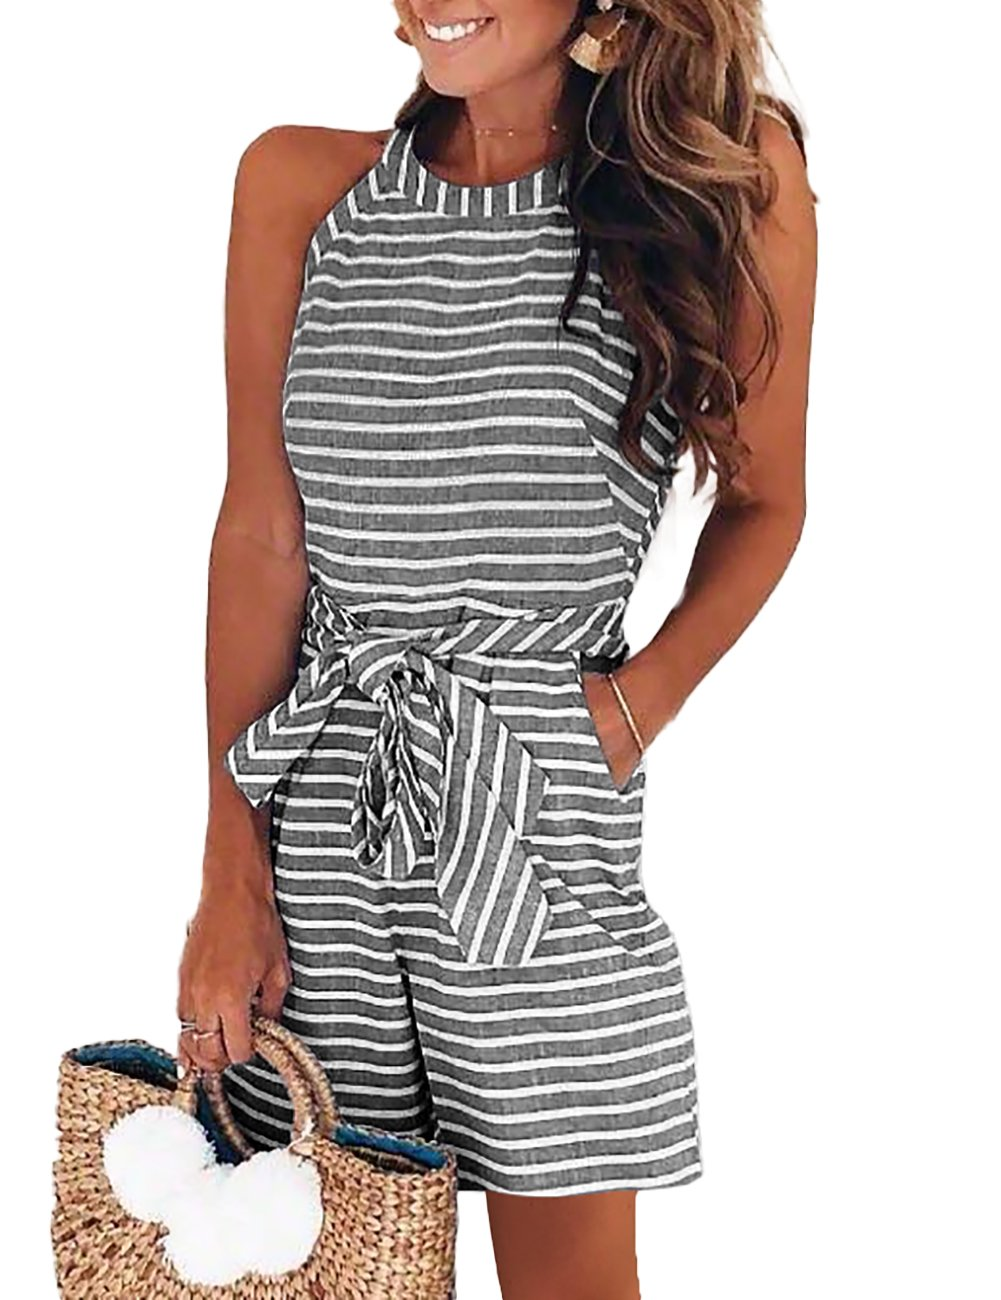 DUBACH Women Casual Striped Sleeveless Short Romper Jumpsuit L Gray